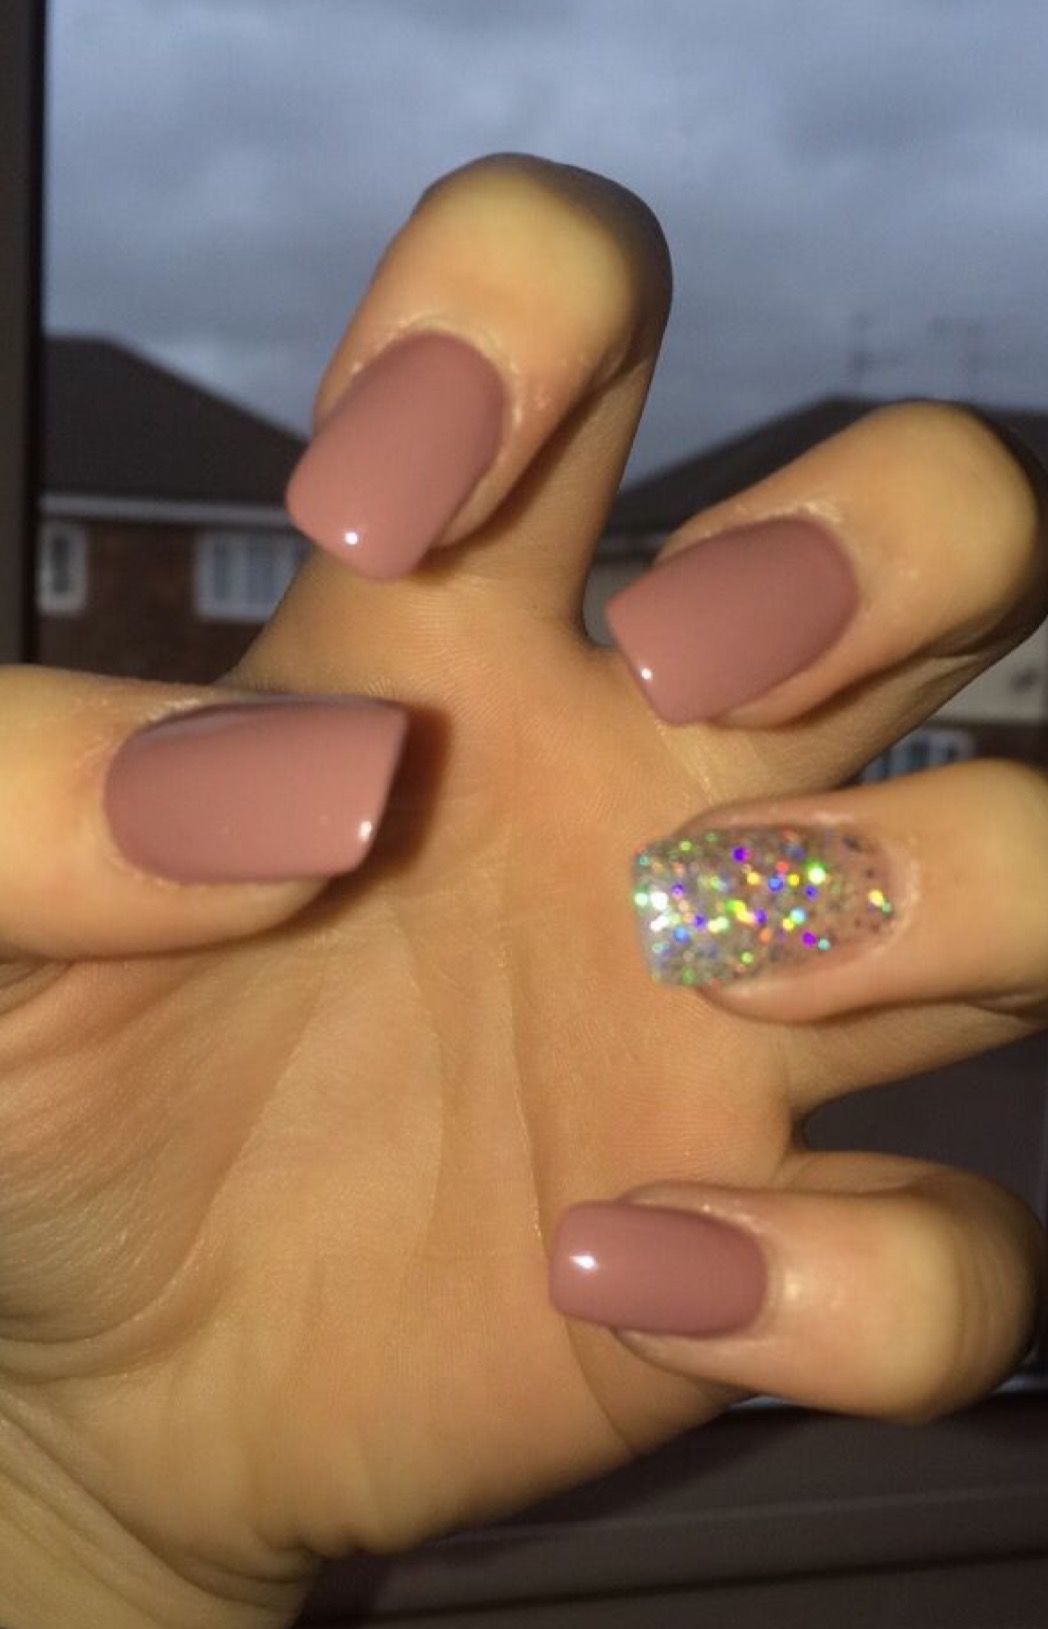 Pin by erin on nails pinterest nail nail make up and hair make up my nudepink and silver square oval acrylic nails prinsesfo Gallery